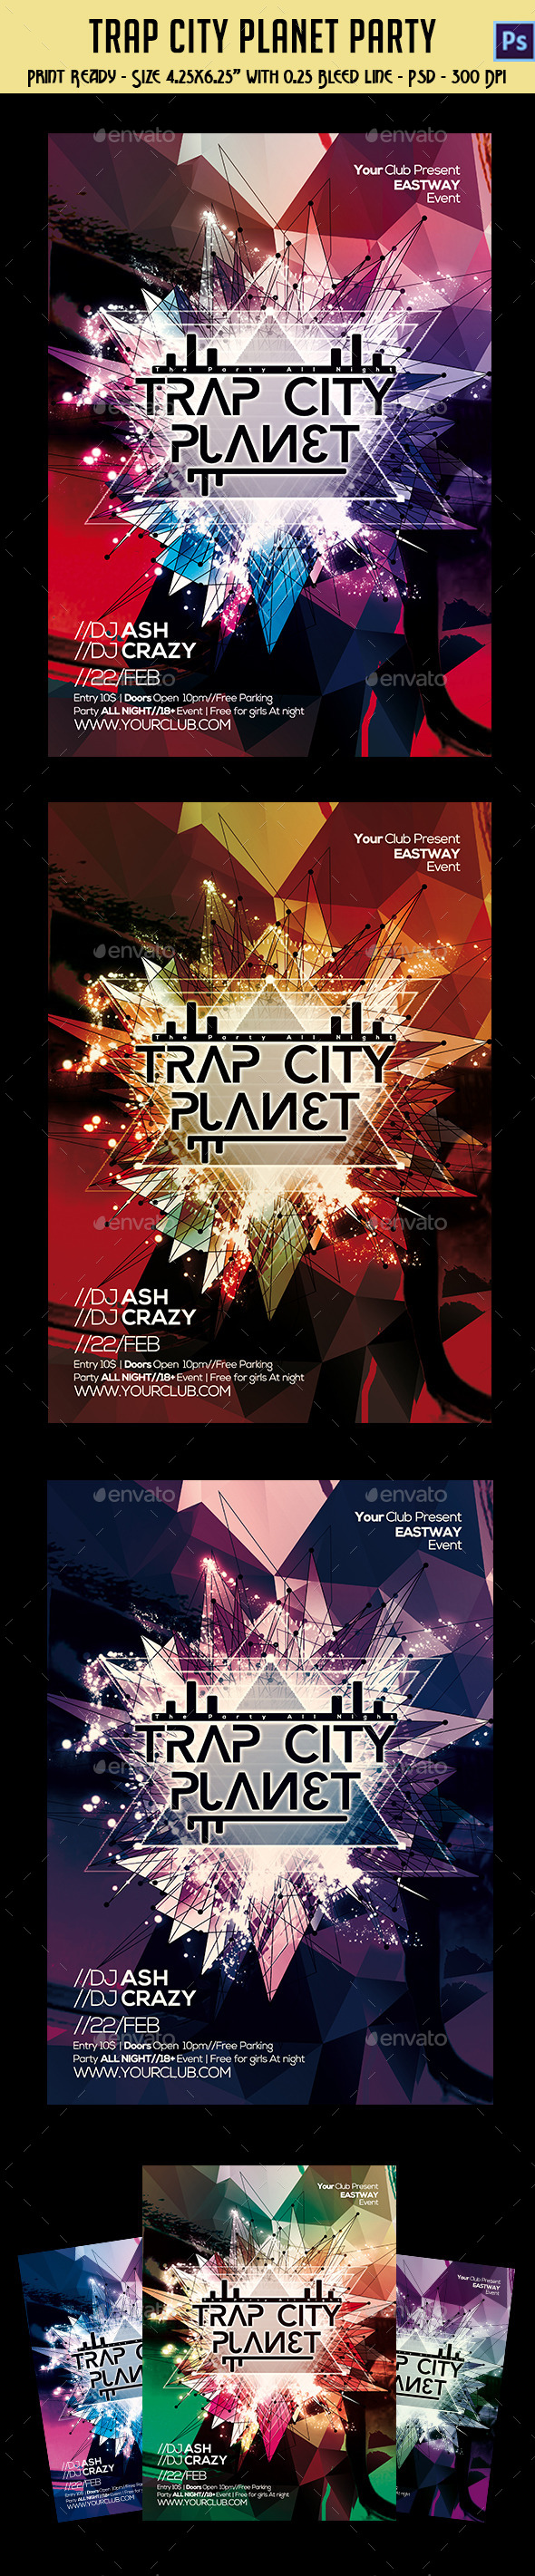 GraphicRiver Trap City Planet Party Template 10610837